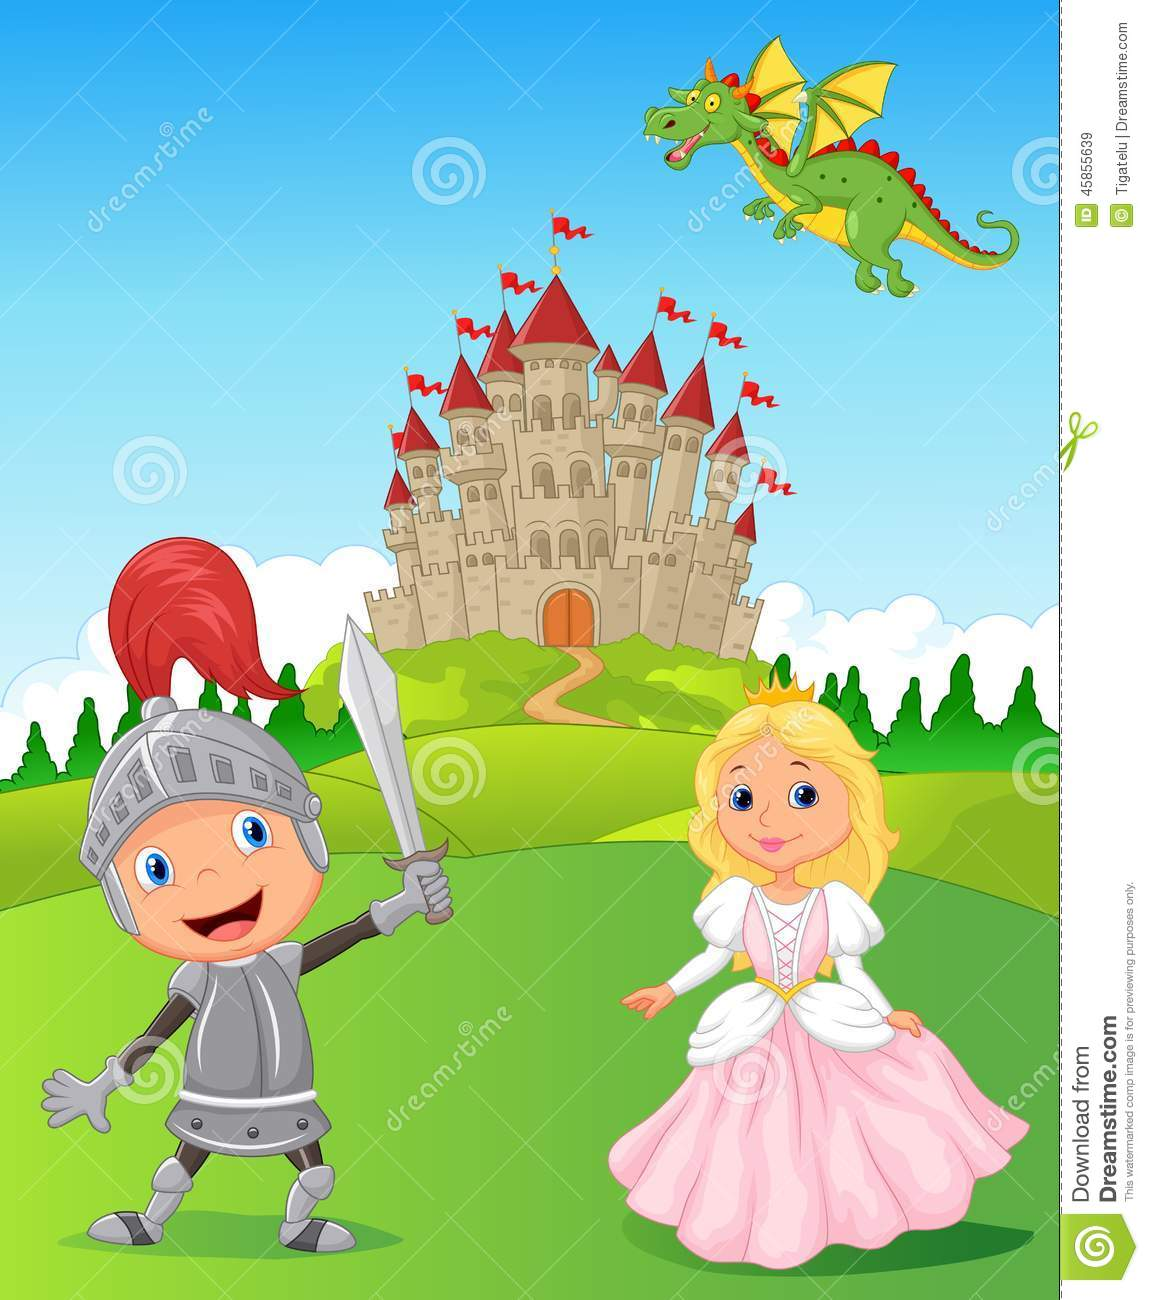 Illustration Stock Chevalier Princesse Et Dragon Image45855639 likewise Cool Minecraft House Designs as well Sb3560 besides Stock Photo Ginger Queen Near Castle Red Haired Woman Green Medieval Dress Image95830314 in addition Watch. on medieval castle plans